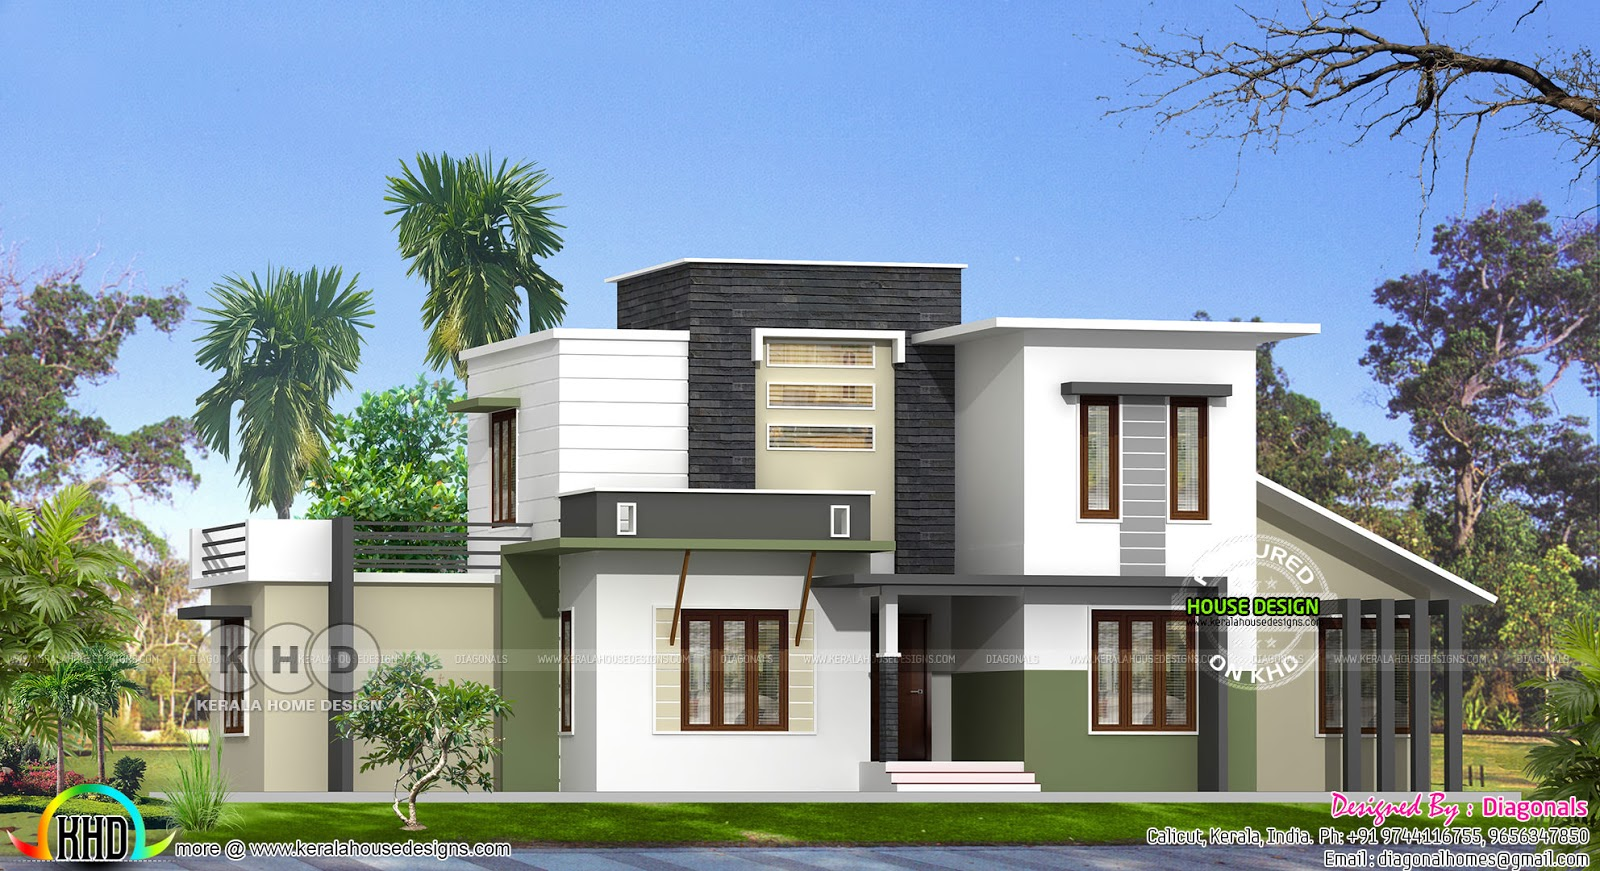 Modern flat roof 4 bedroom house architecture kerala - Home design at sq ...